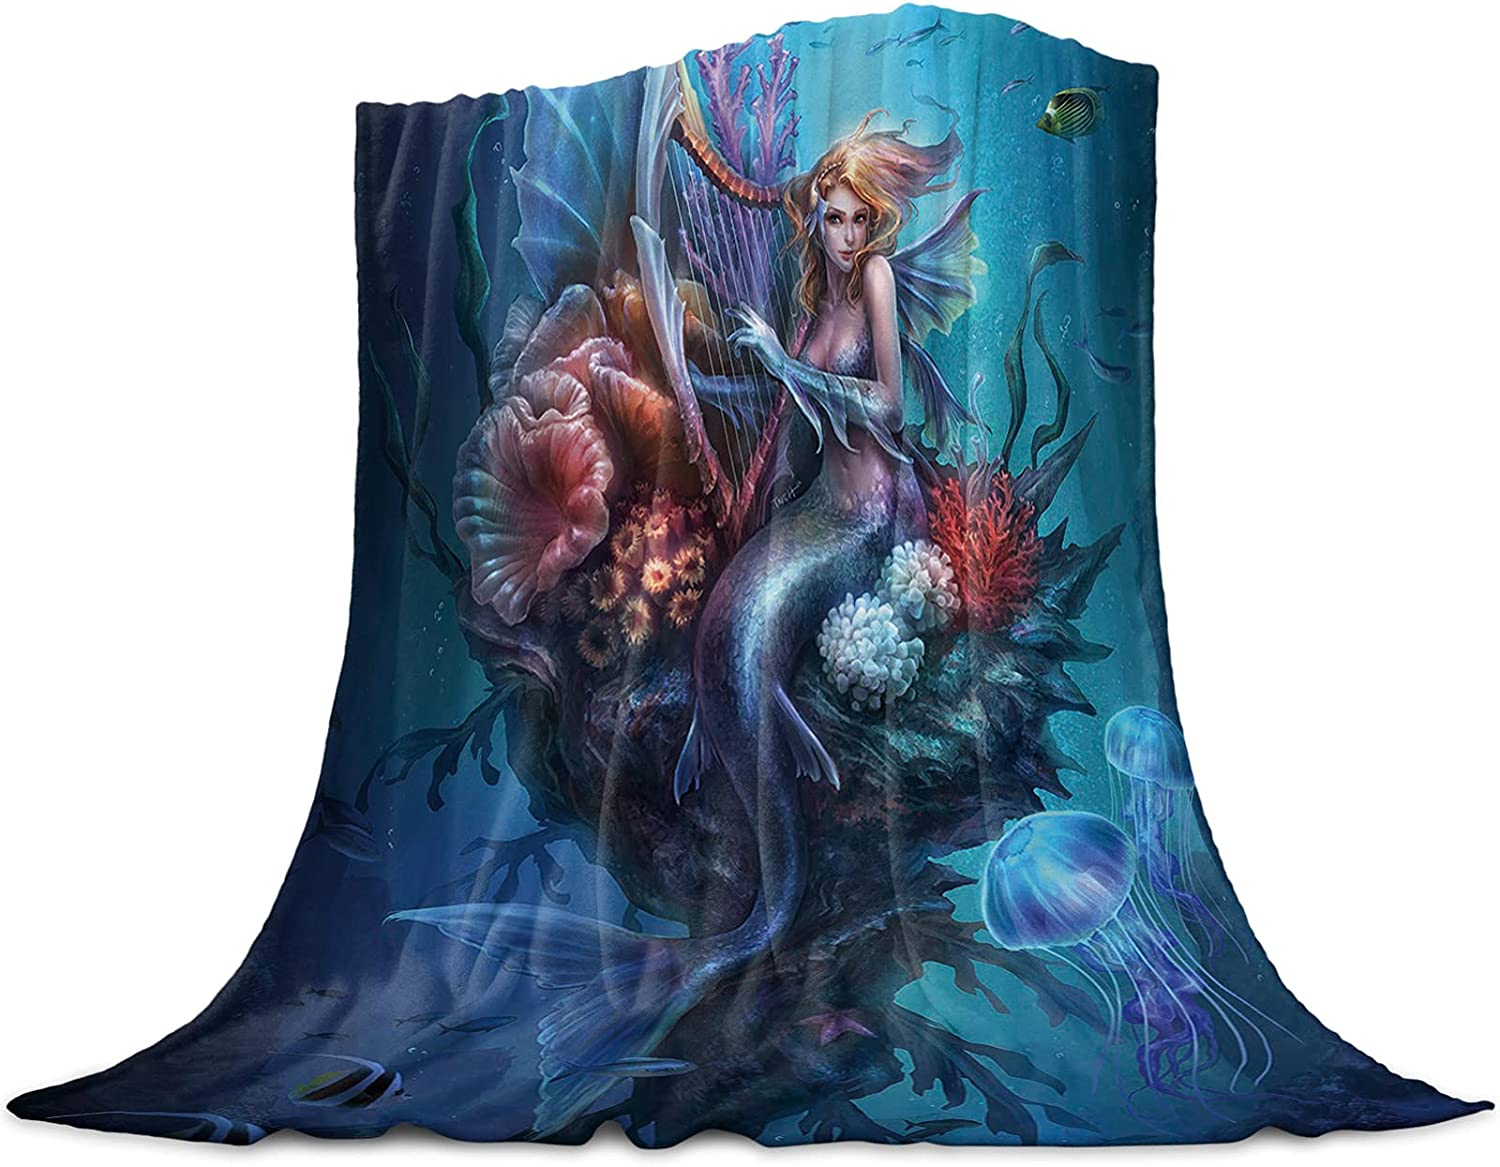 2021 new SODIKA Fleece Throw Blanket Flannel Max 71% OFF Throws Blankets Couc for and